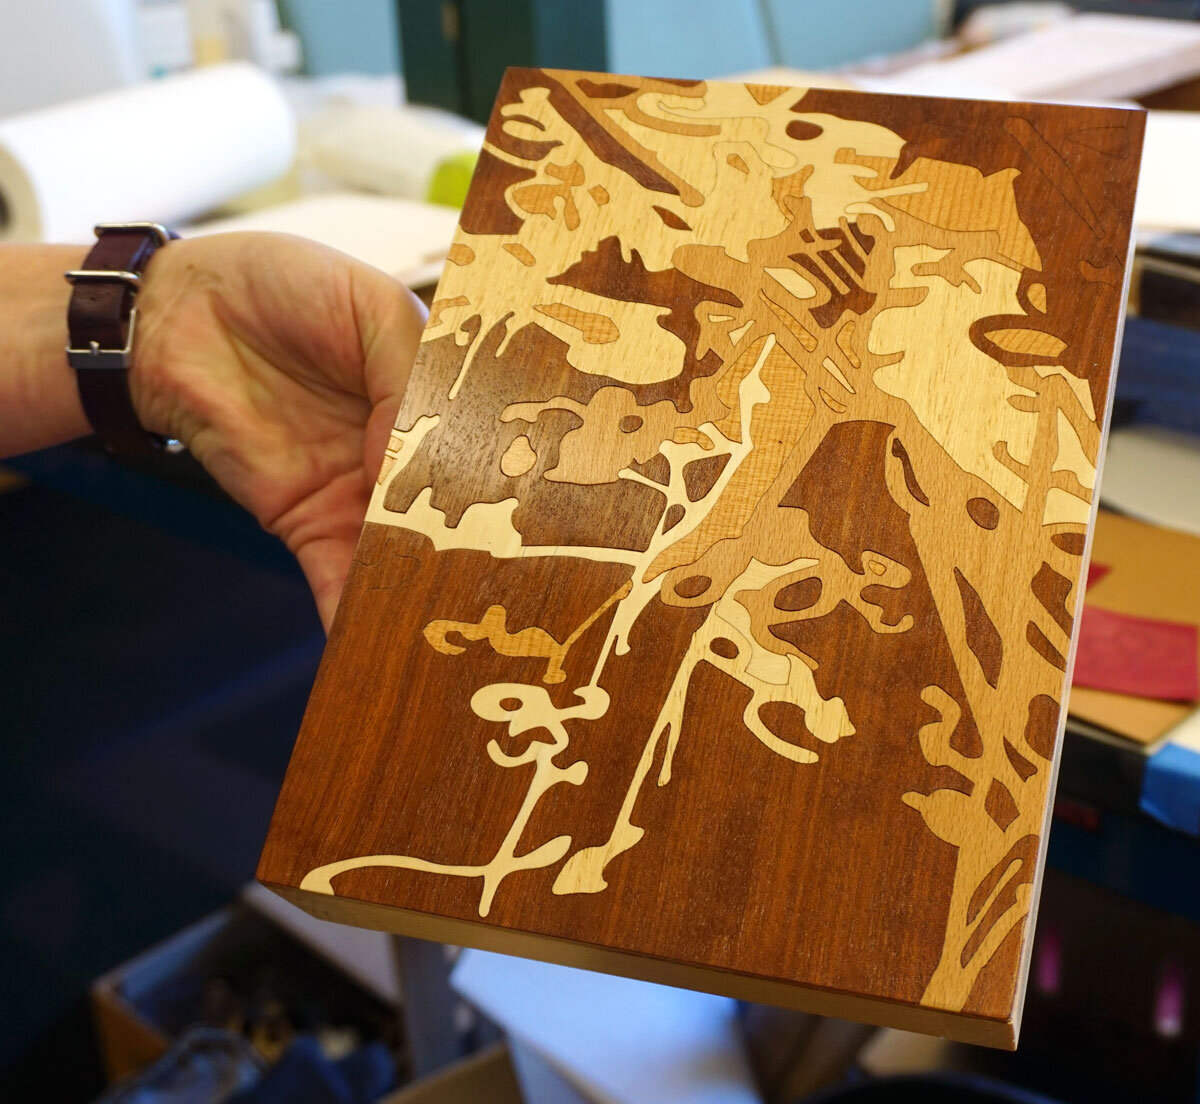 © 2019 Louise Levergneux. Sarah's art work using laser cut marquetry in wood veneer.